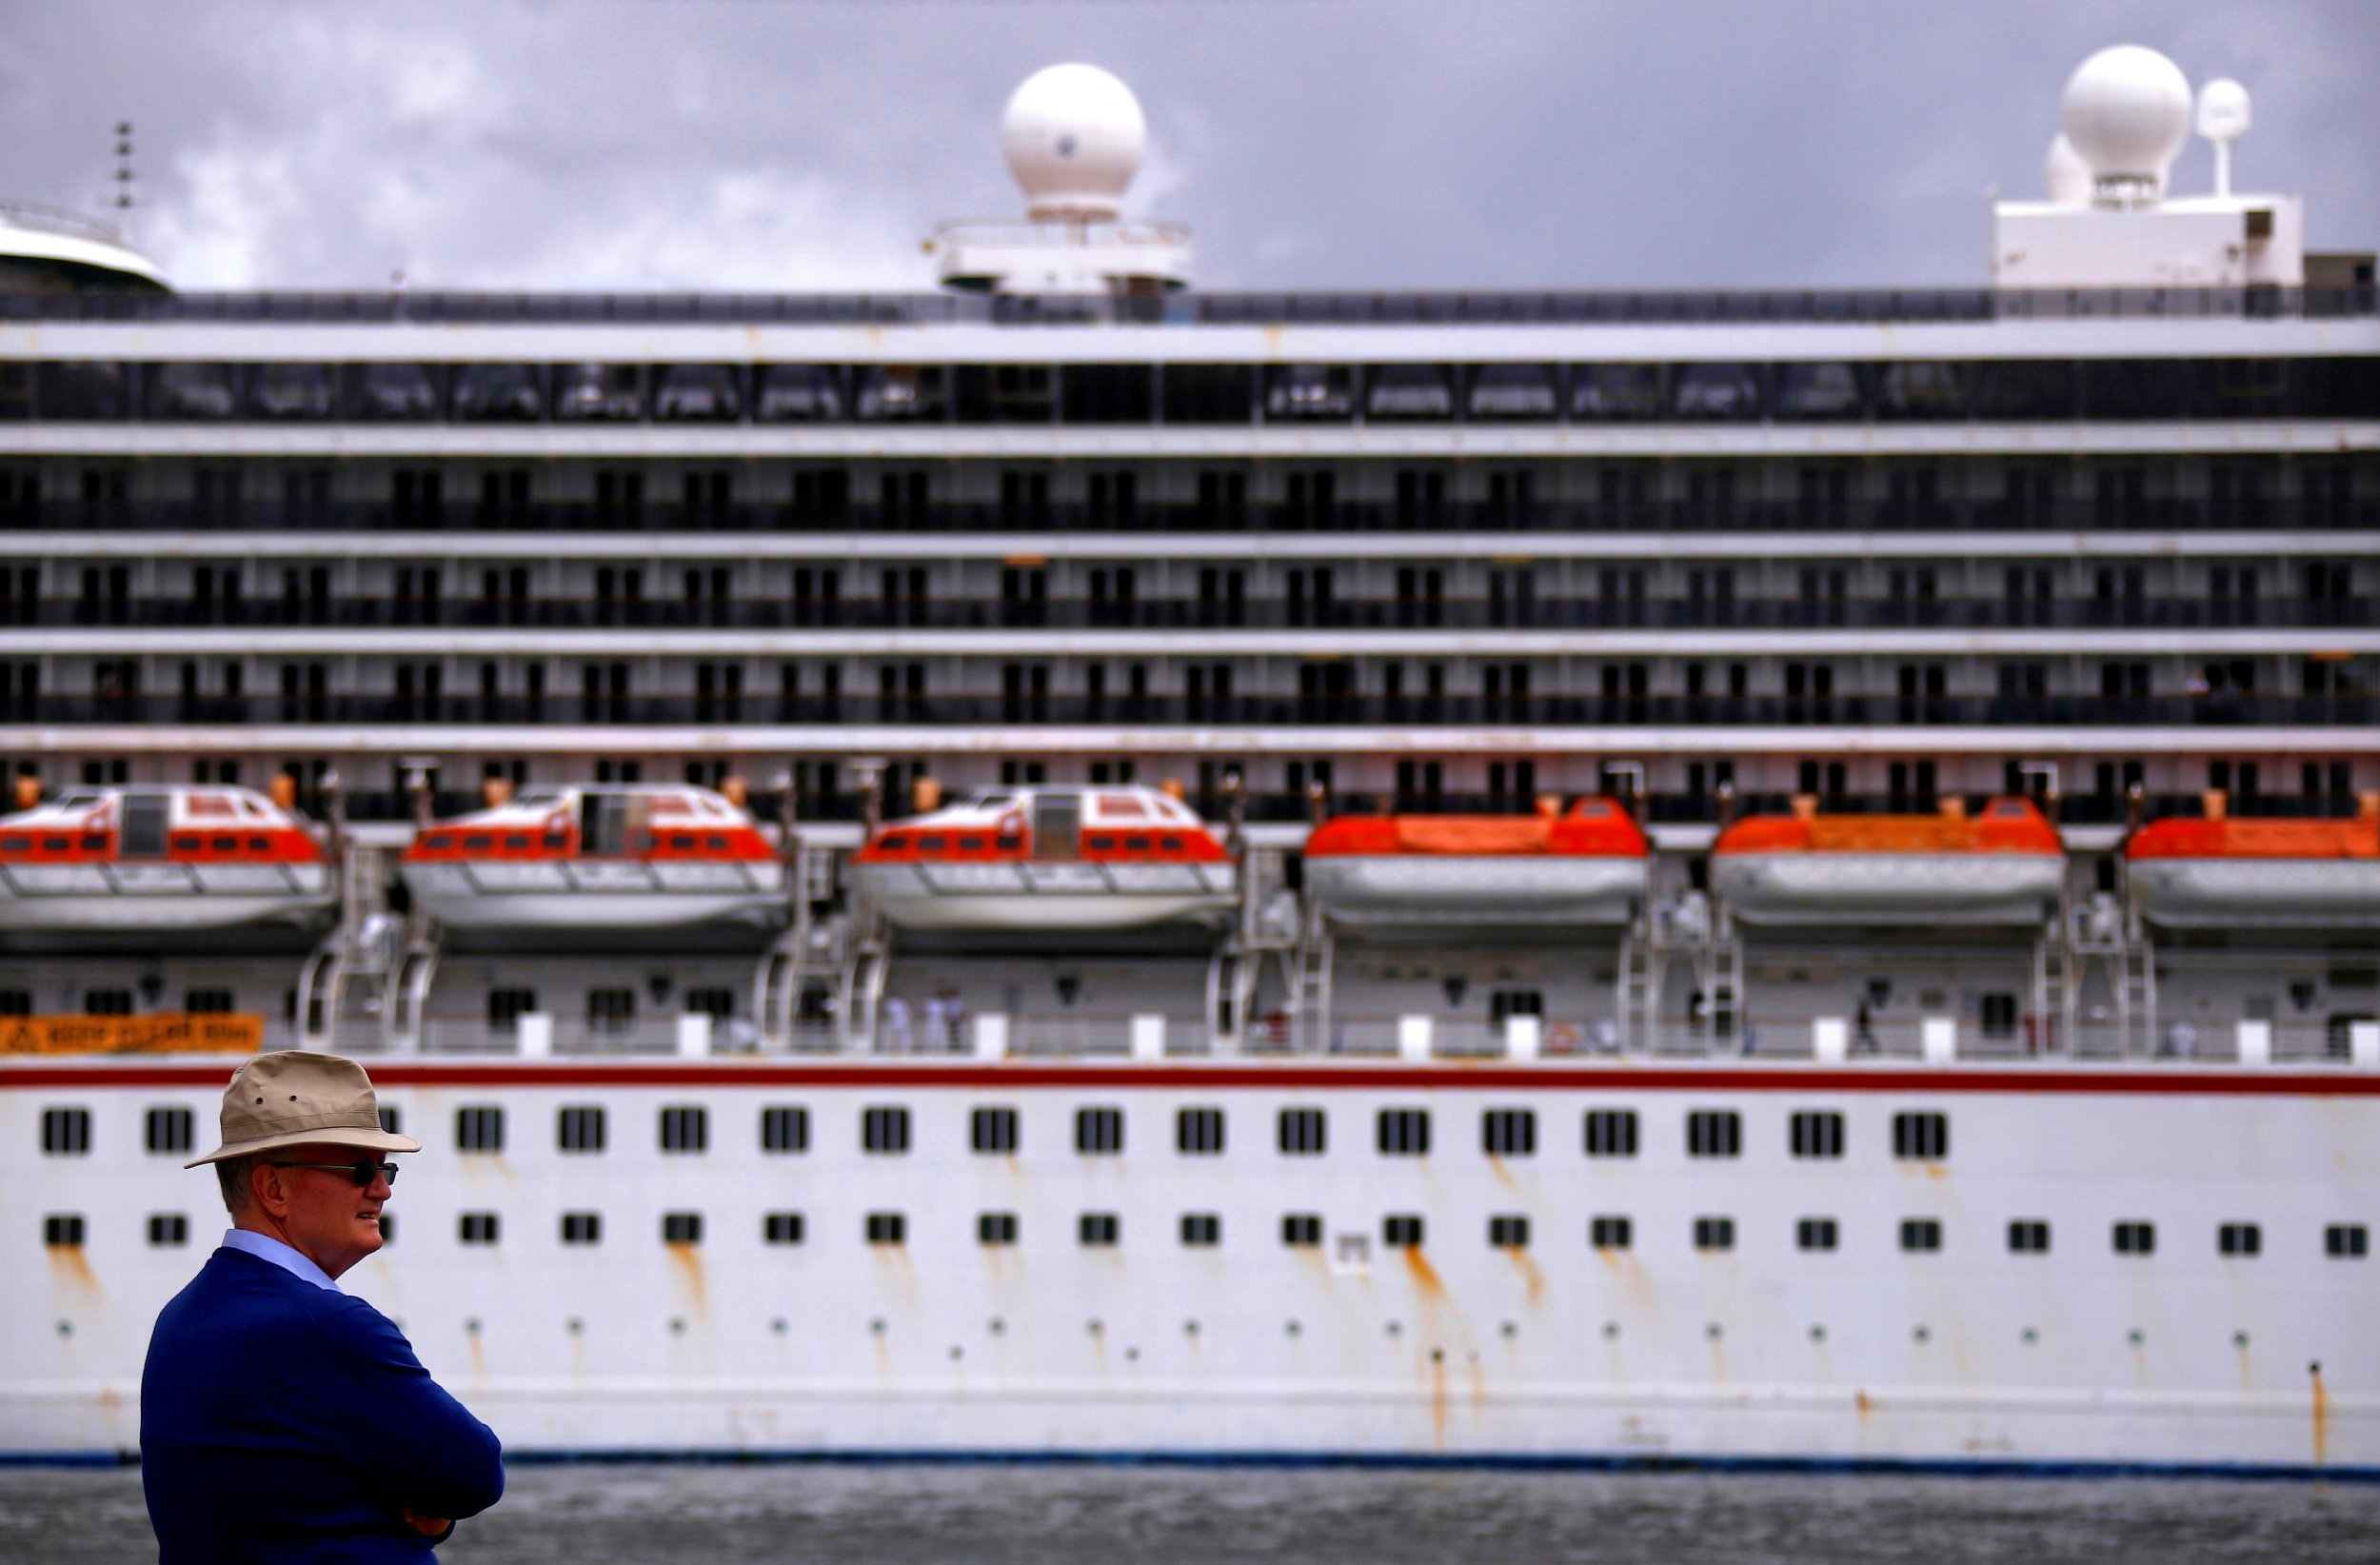 Cruise Ship Refunds Passengers After 1,300 Men Took Over and